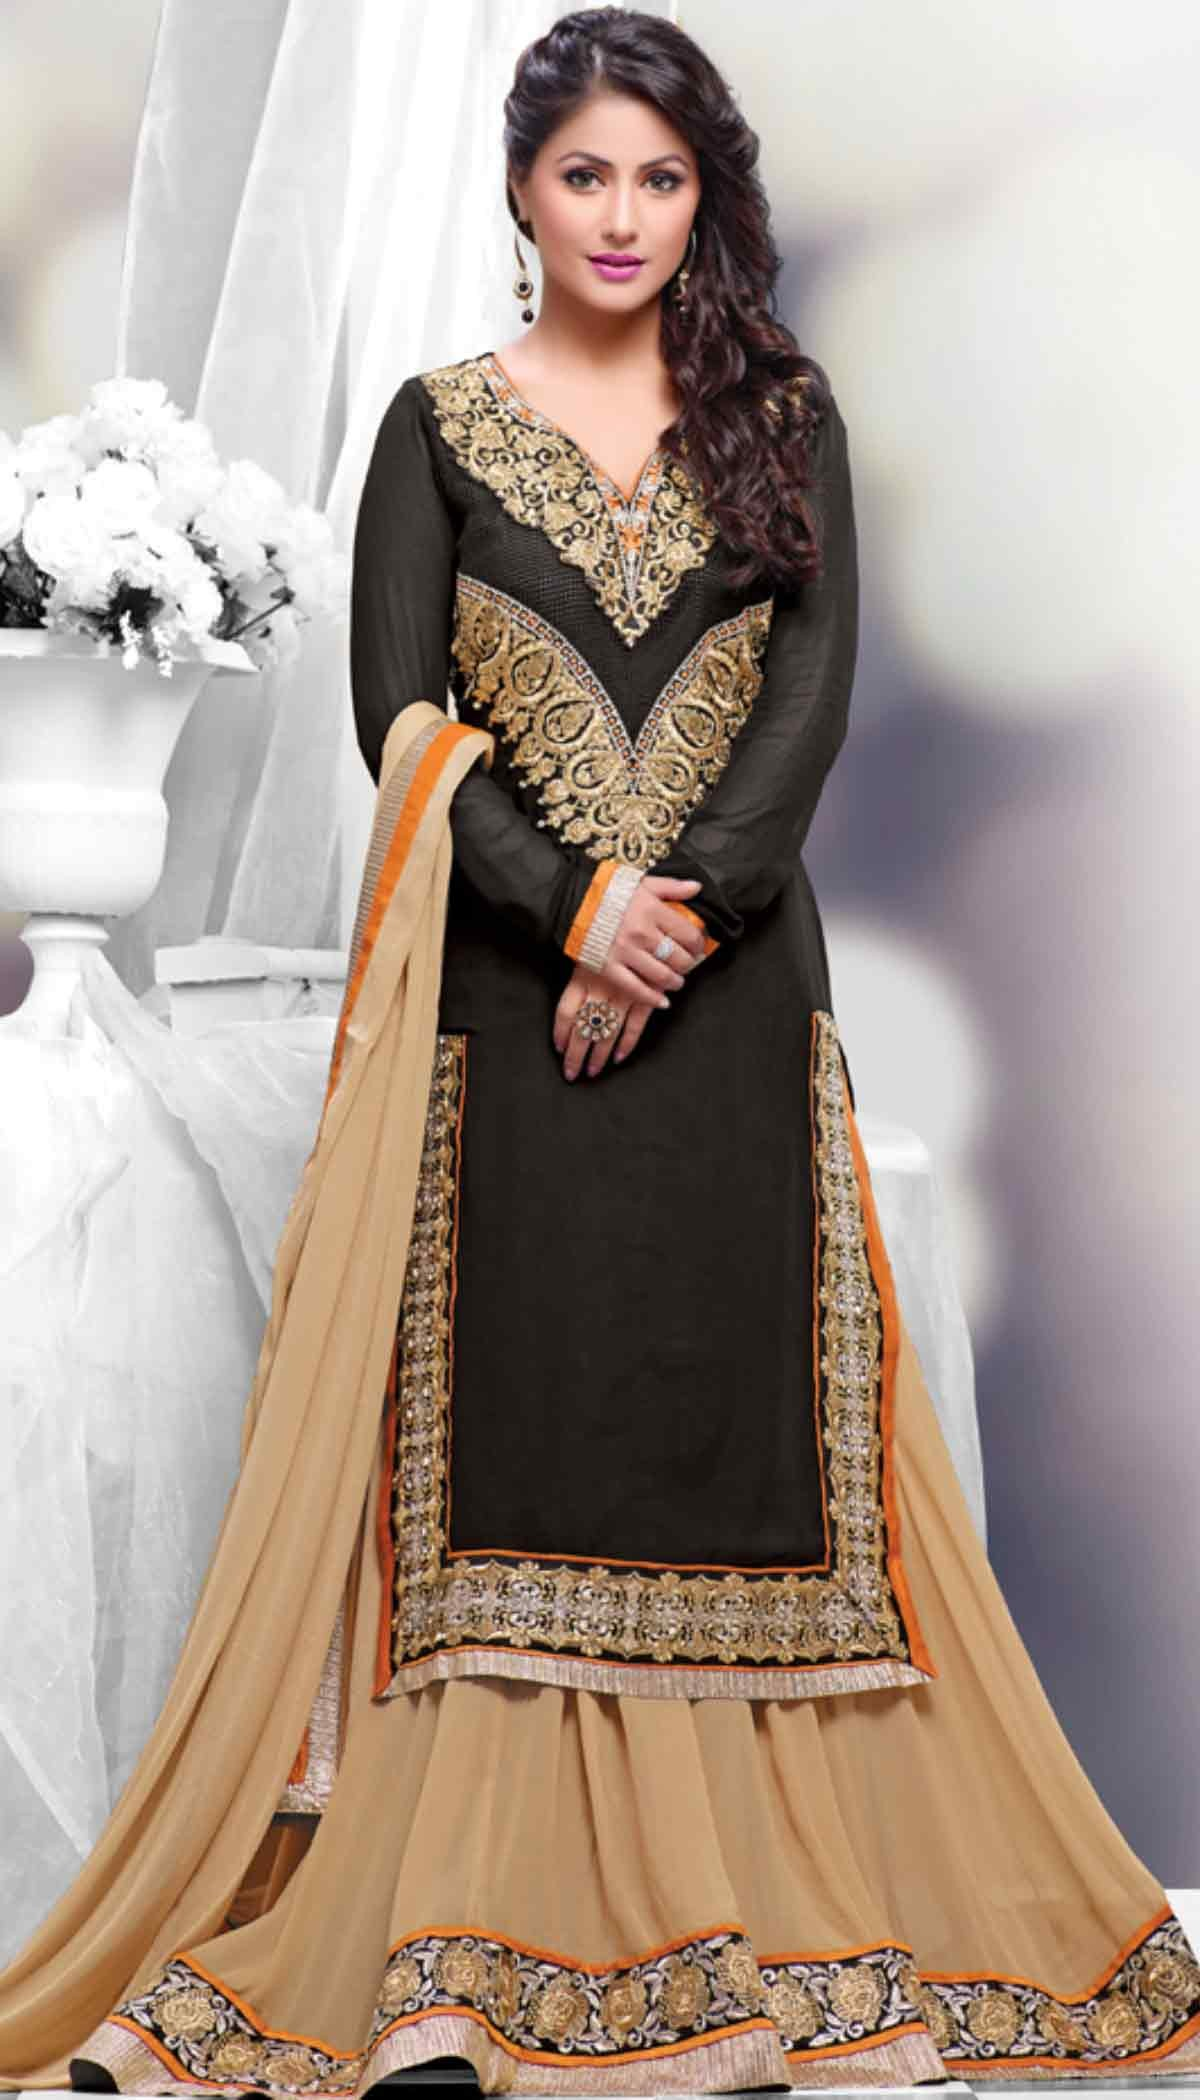 Heena-Khan-Black-Poly-Georgette-Resham-Embroidered-Long-Straight-Suit-With-Chiffon-Dupatta-wallpaper-wp5207390